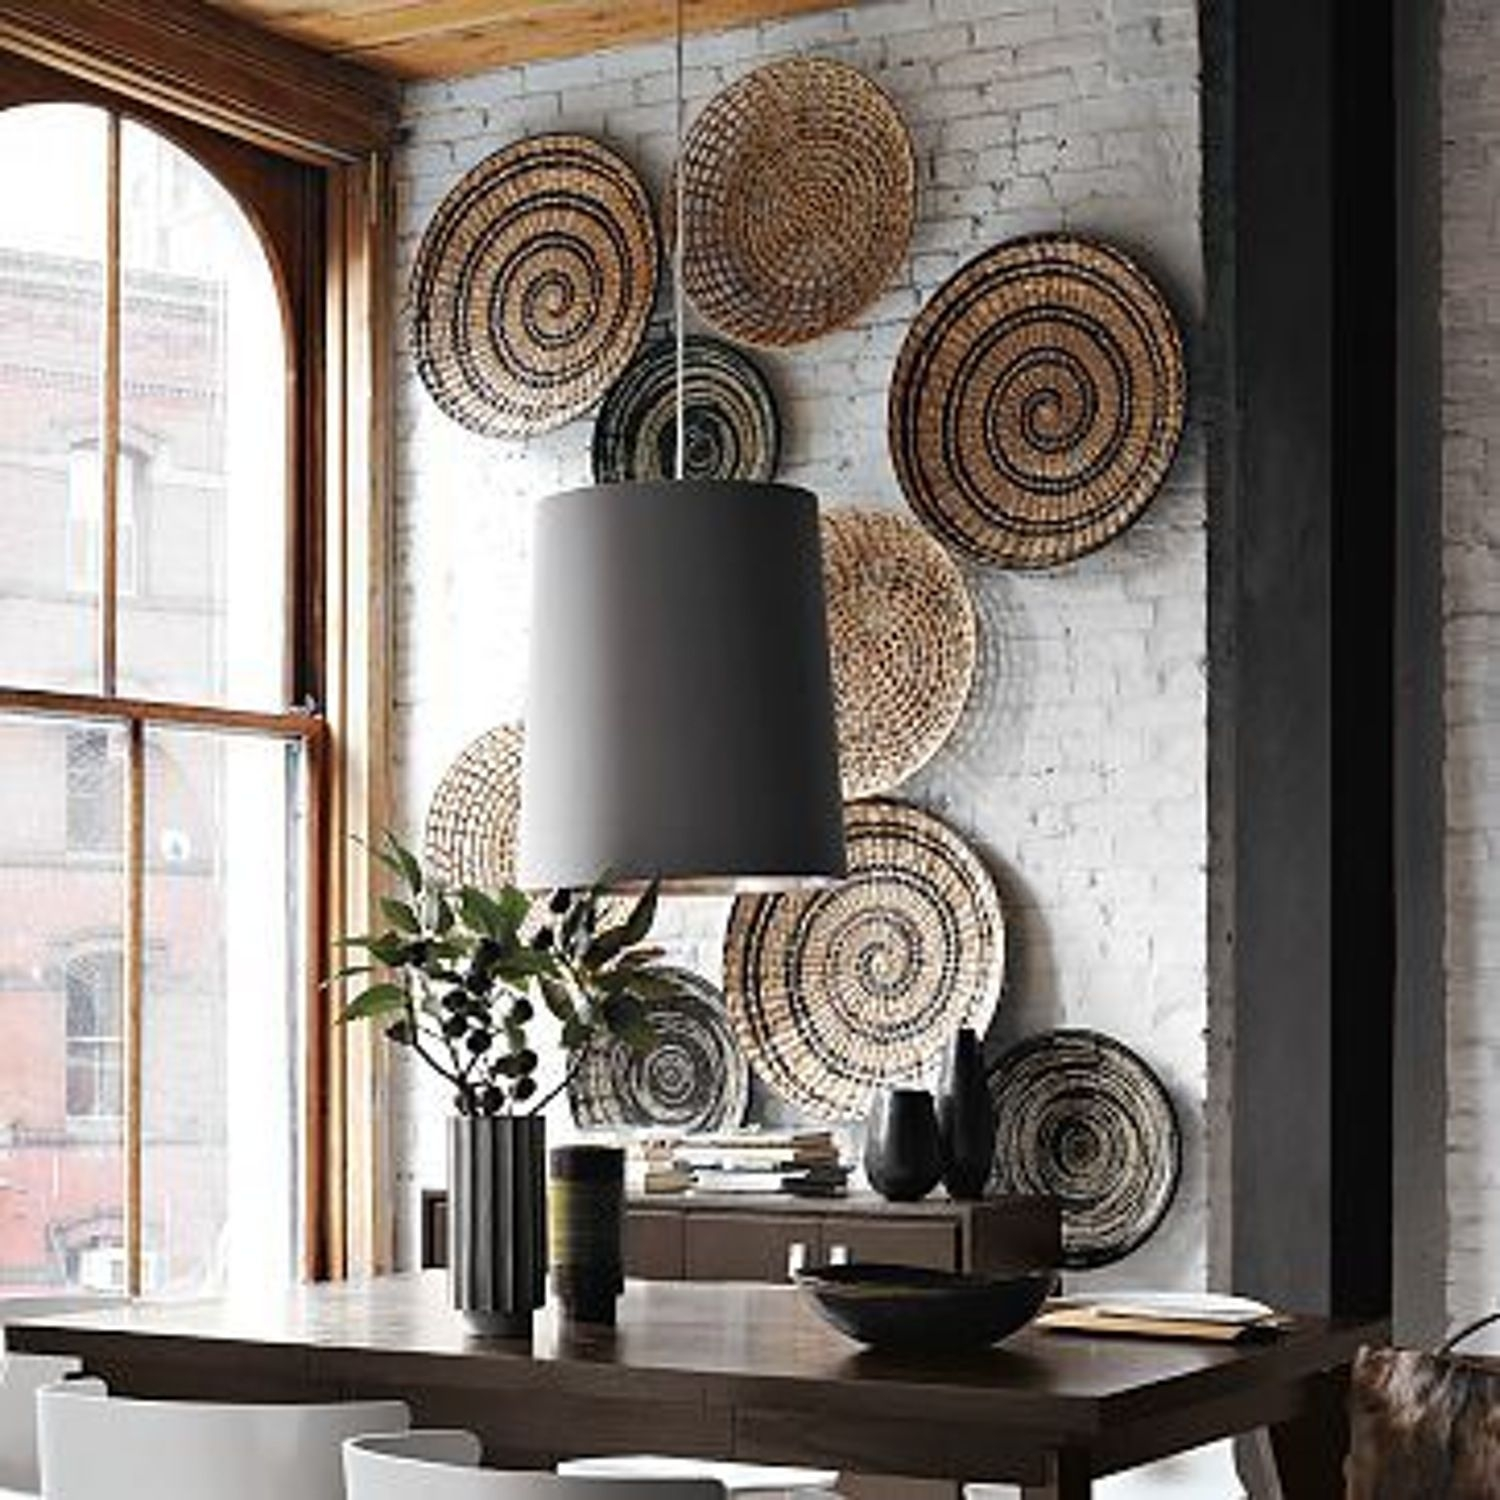 Large decorative plates for the wall & Large Decorative Plates For The Wall - Foter